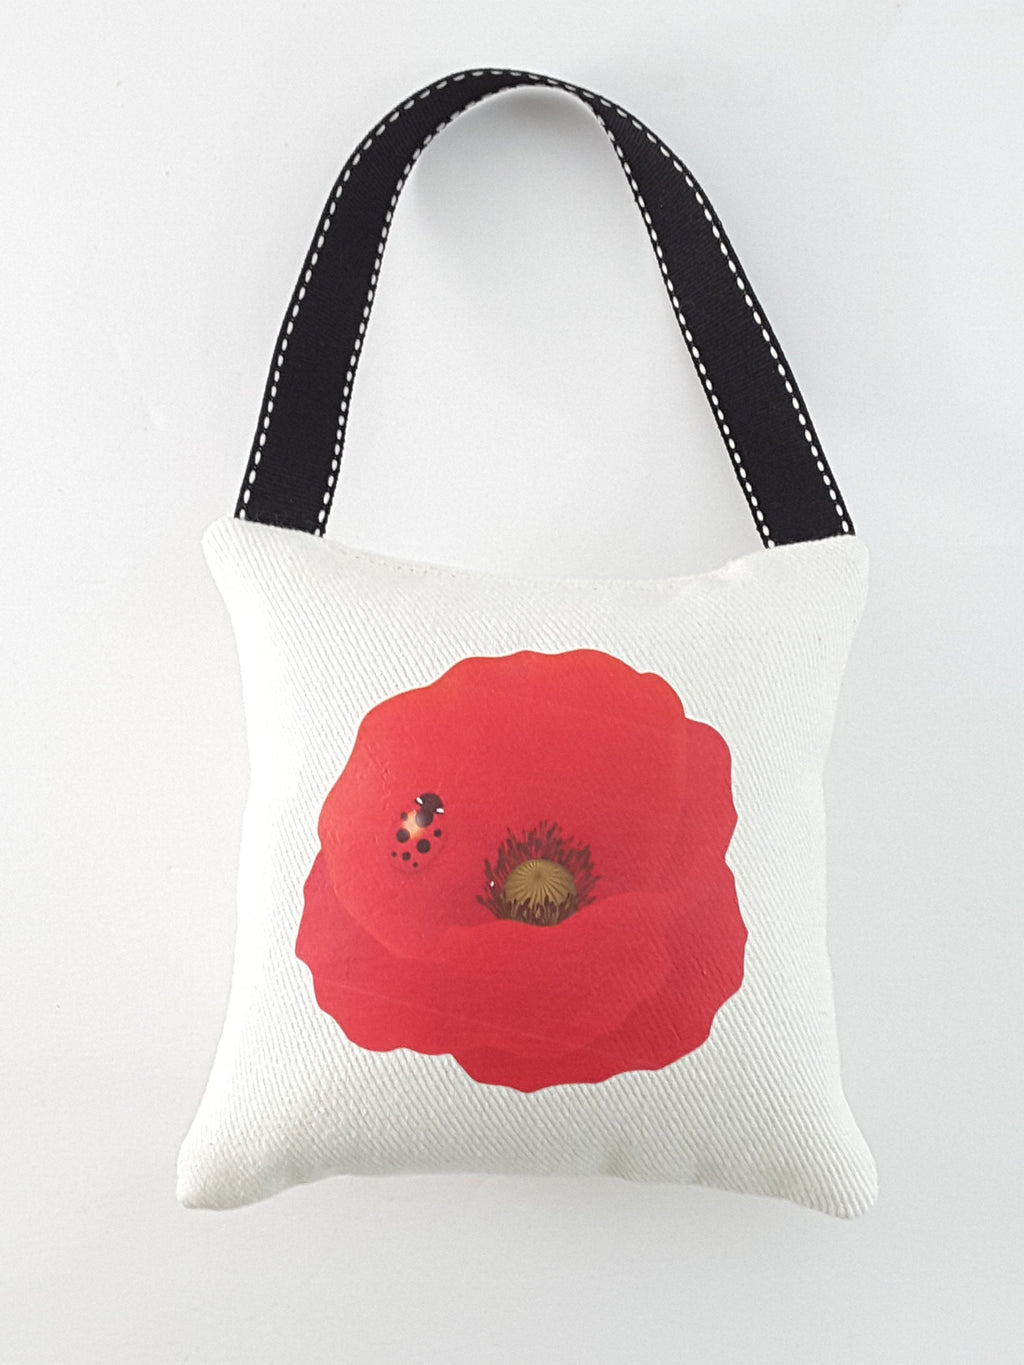 Hanging Red Poppy Pillow for Home or Office Decor - includes free shipping in USA - TheLastWordBish.com